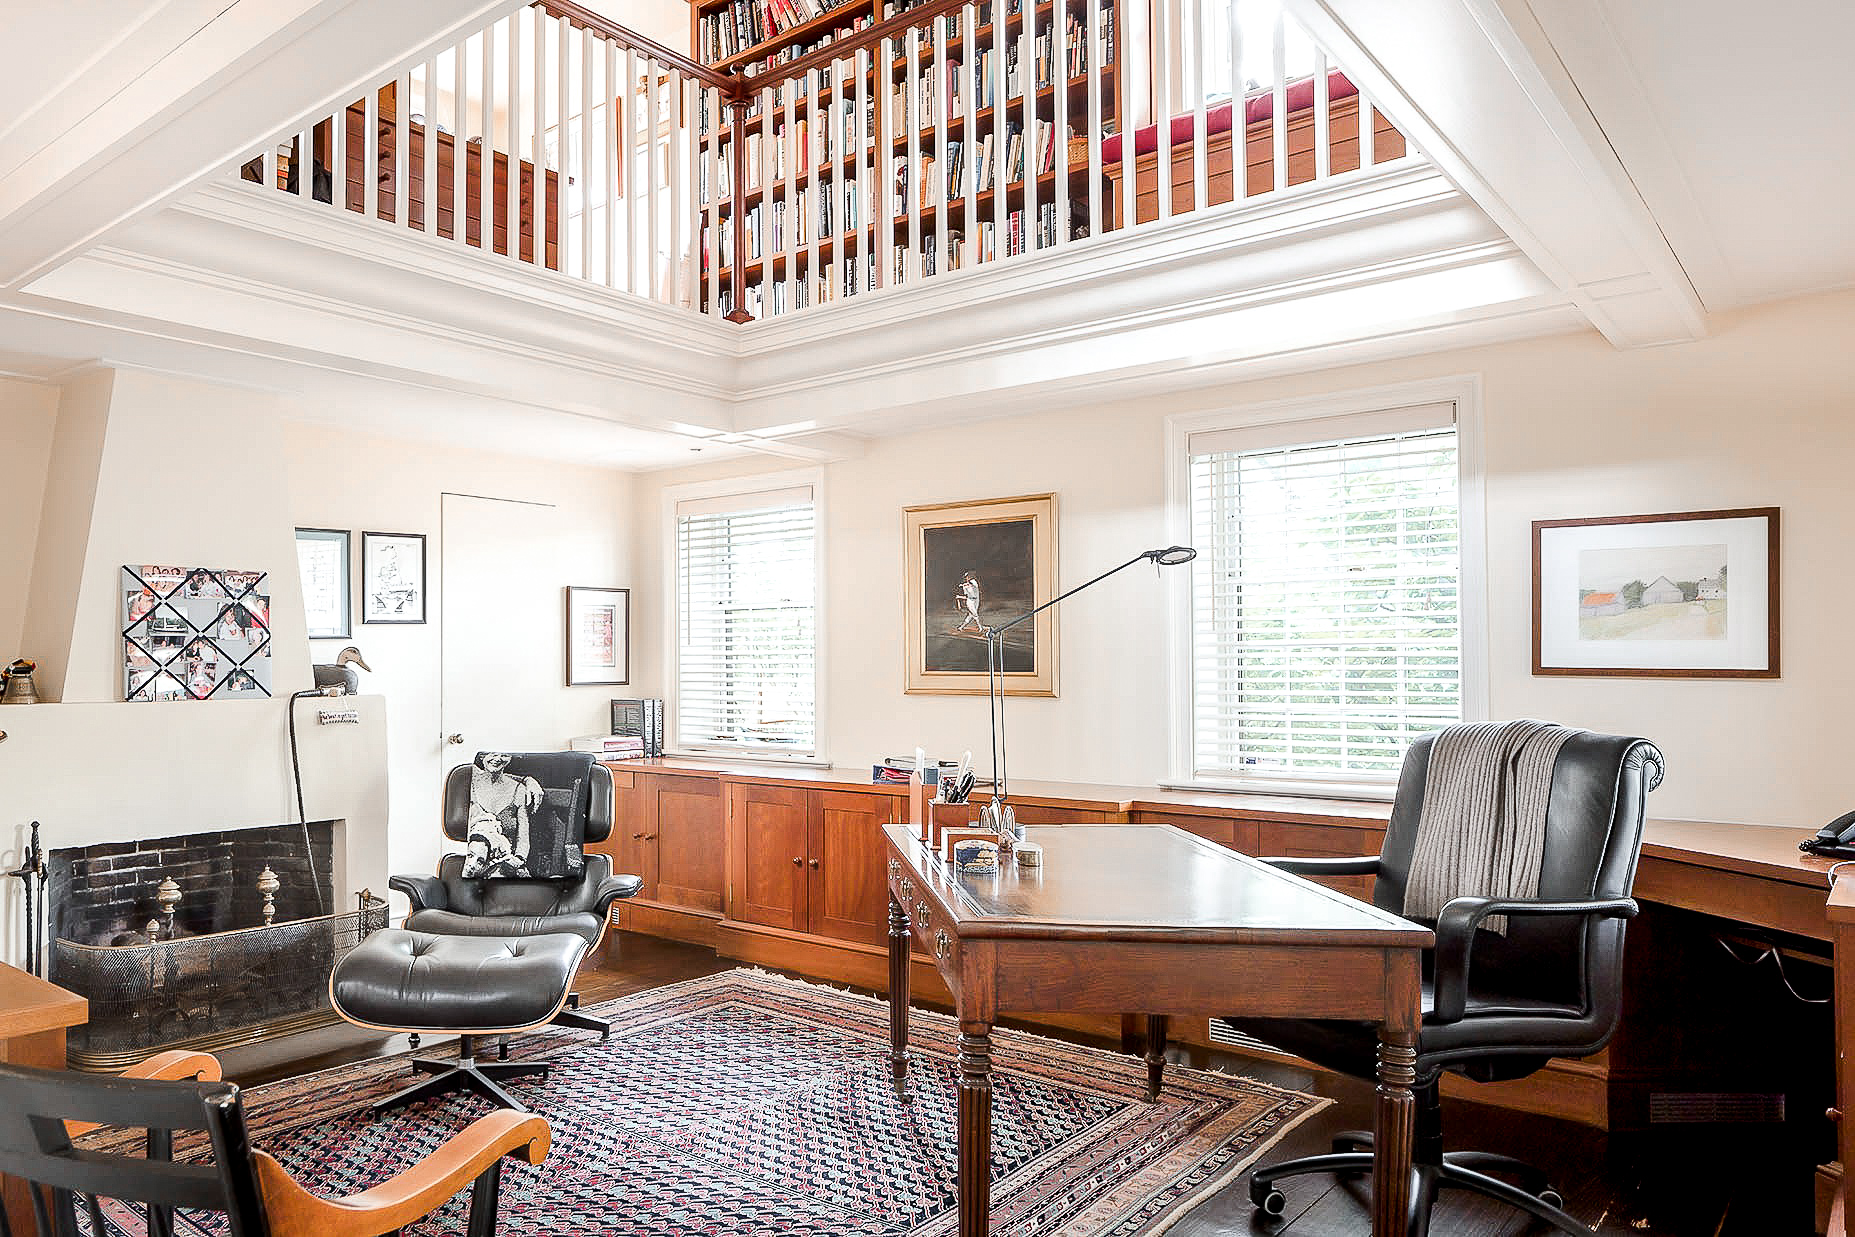 Luxe_and_Livable_Interior_Design_Blog_by_Maloney_Interiors_Mott_and_Chace_Realty_12.jpg